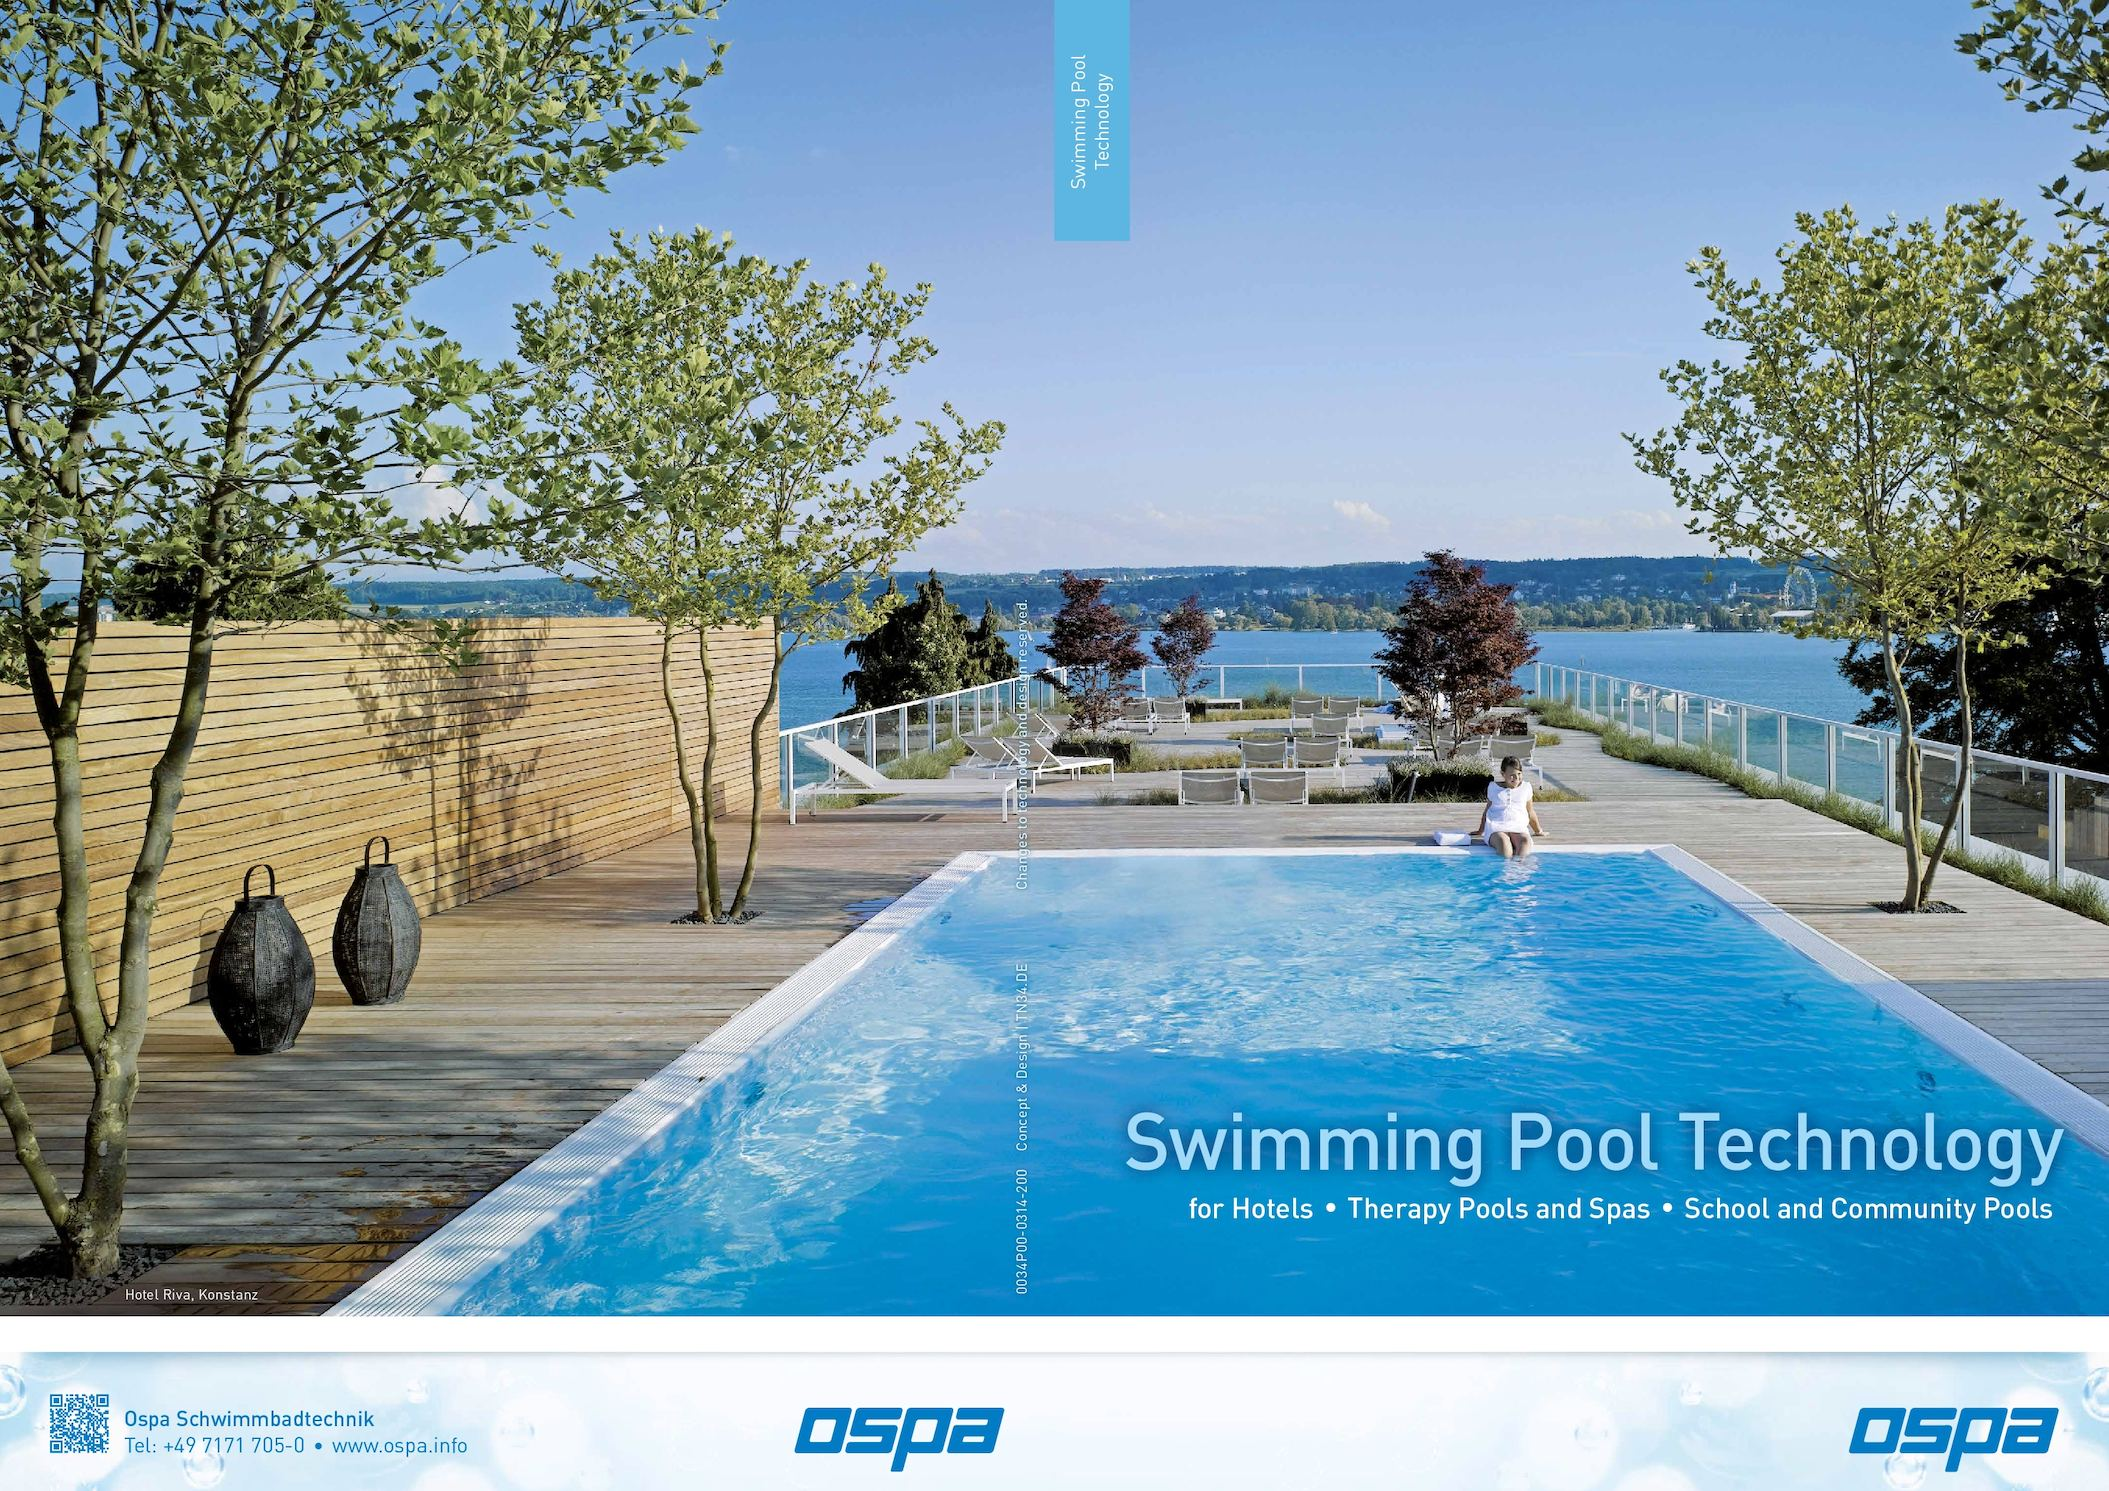 Bezaubernd Eingebauter Pool Sammlung Von Calaméo - Ospa Swimming Technology For Hotels,